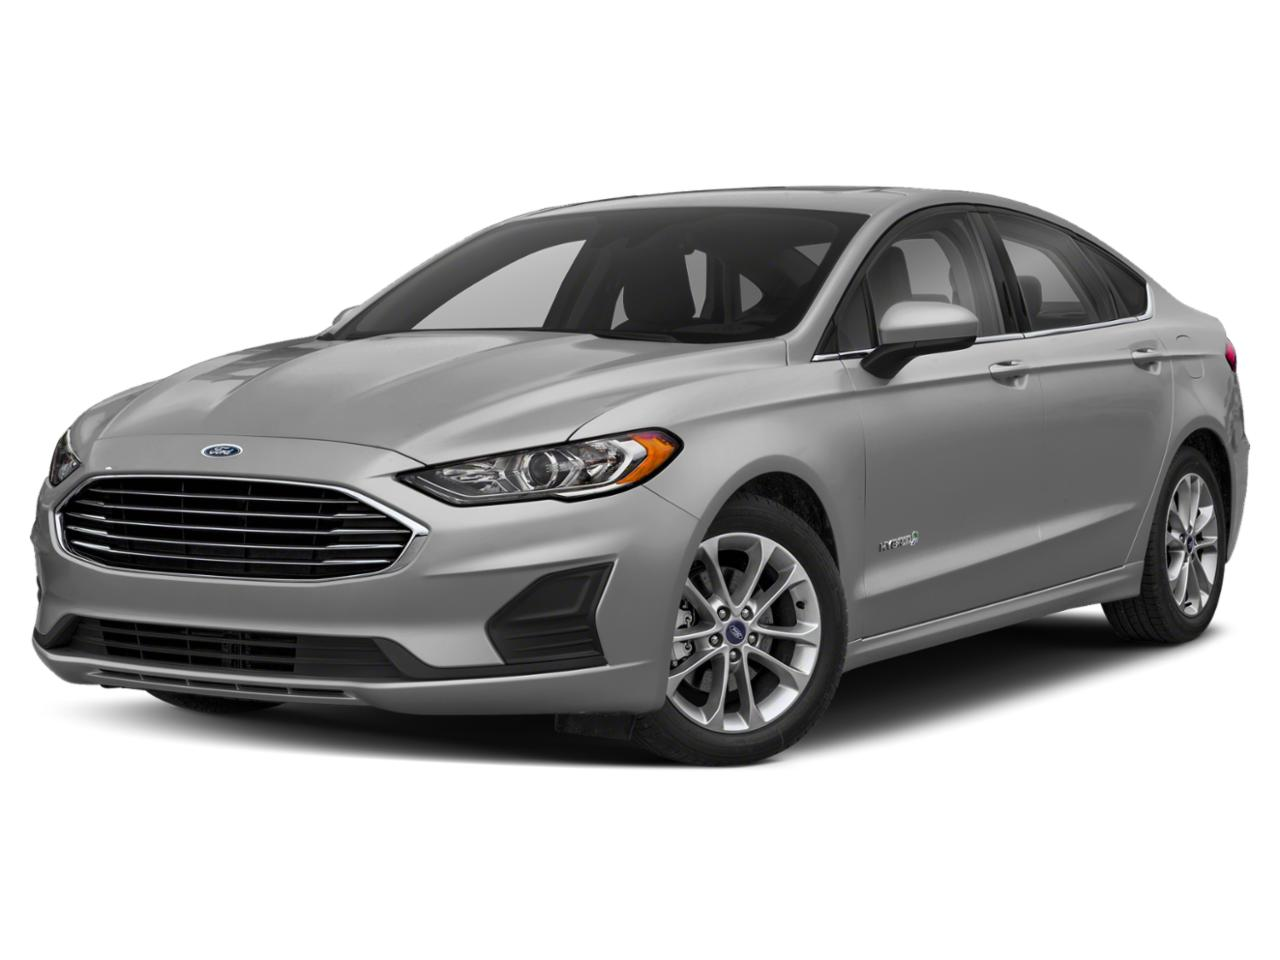 2019 Ford Fusion Hybrid Vehicle Photo in Owensboro, KY 42303